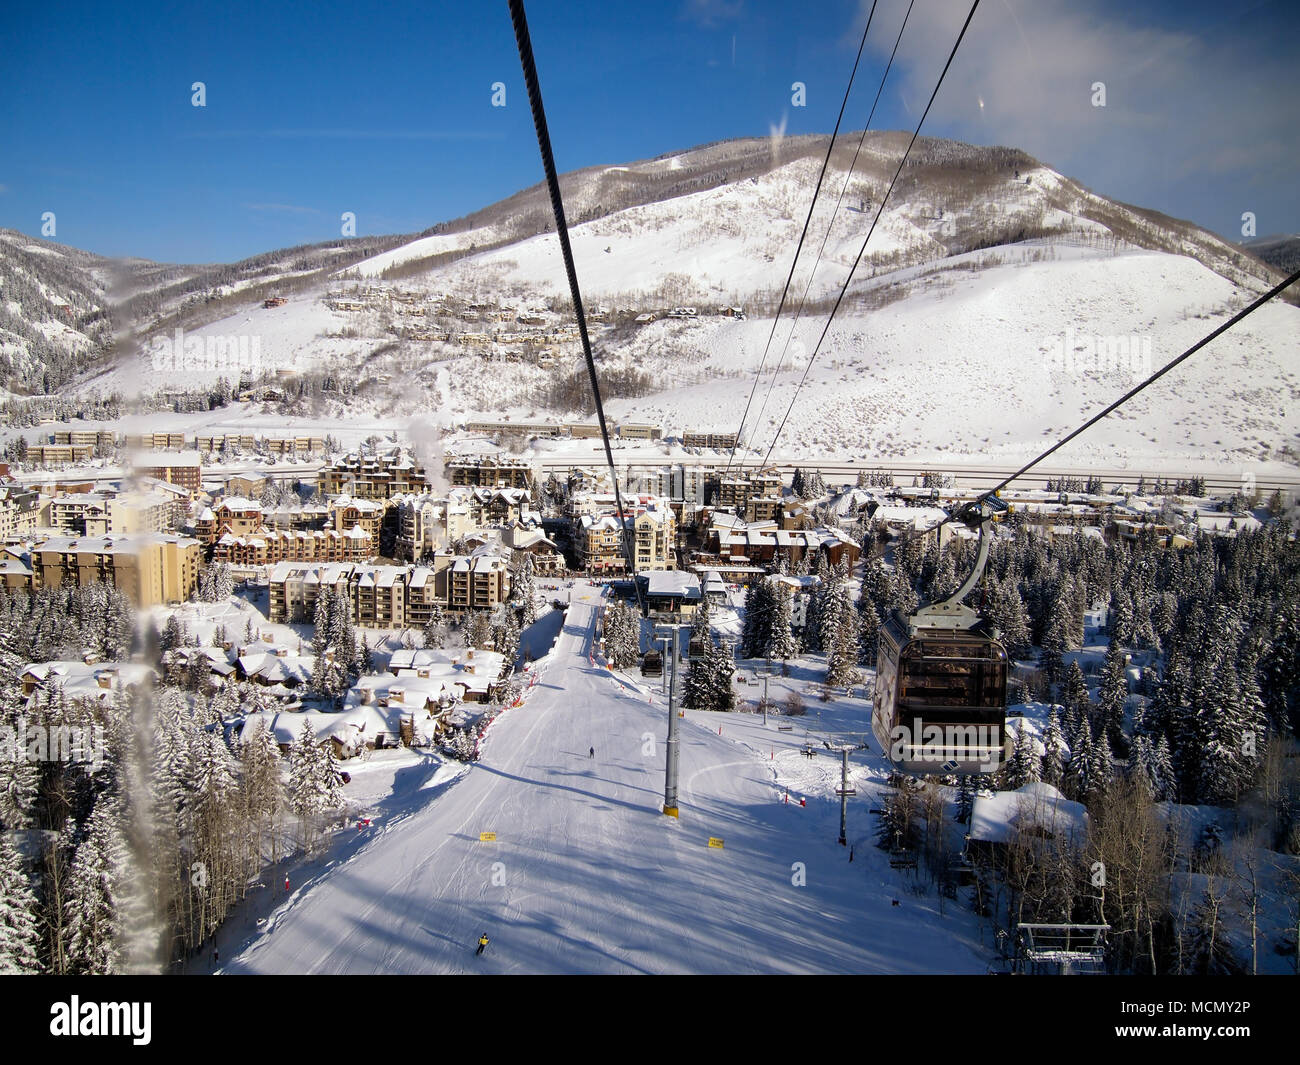 Vail, Colorado; Ski Resort Stockbild